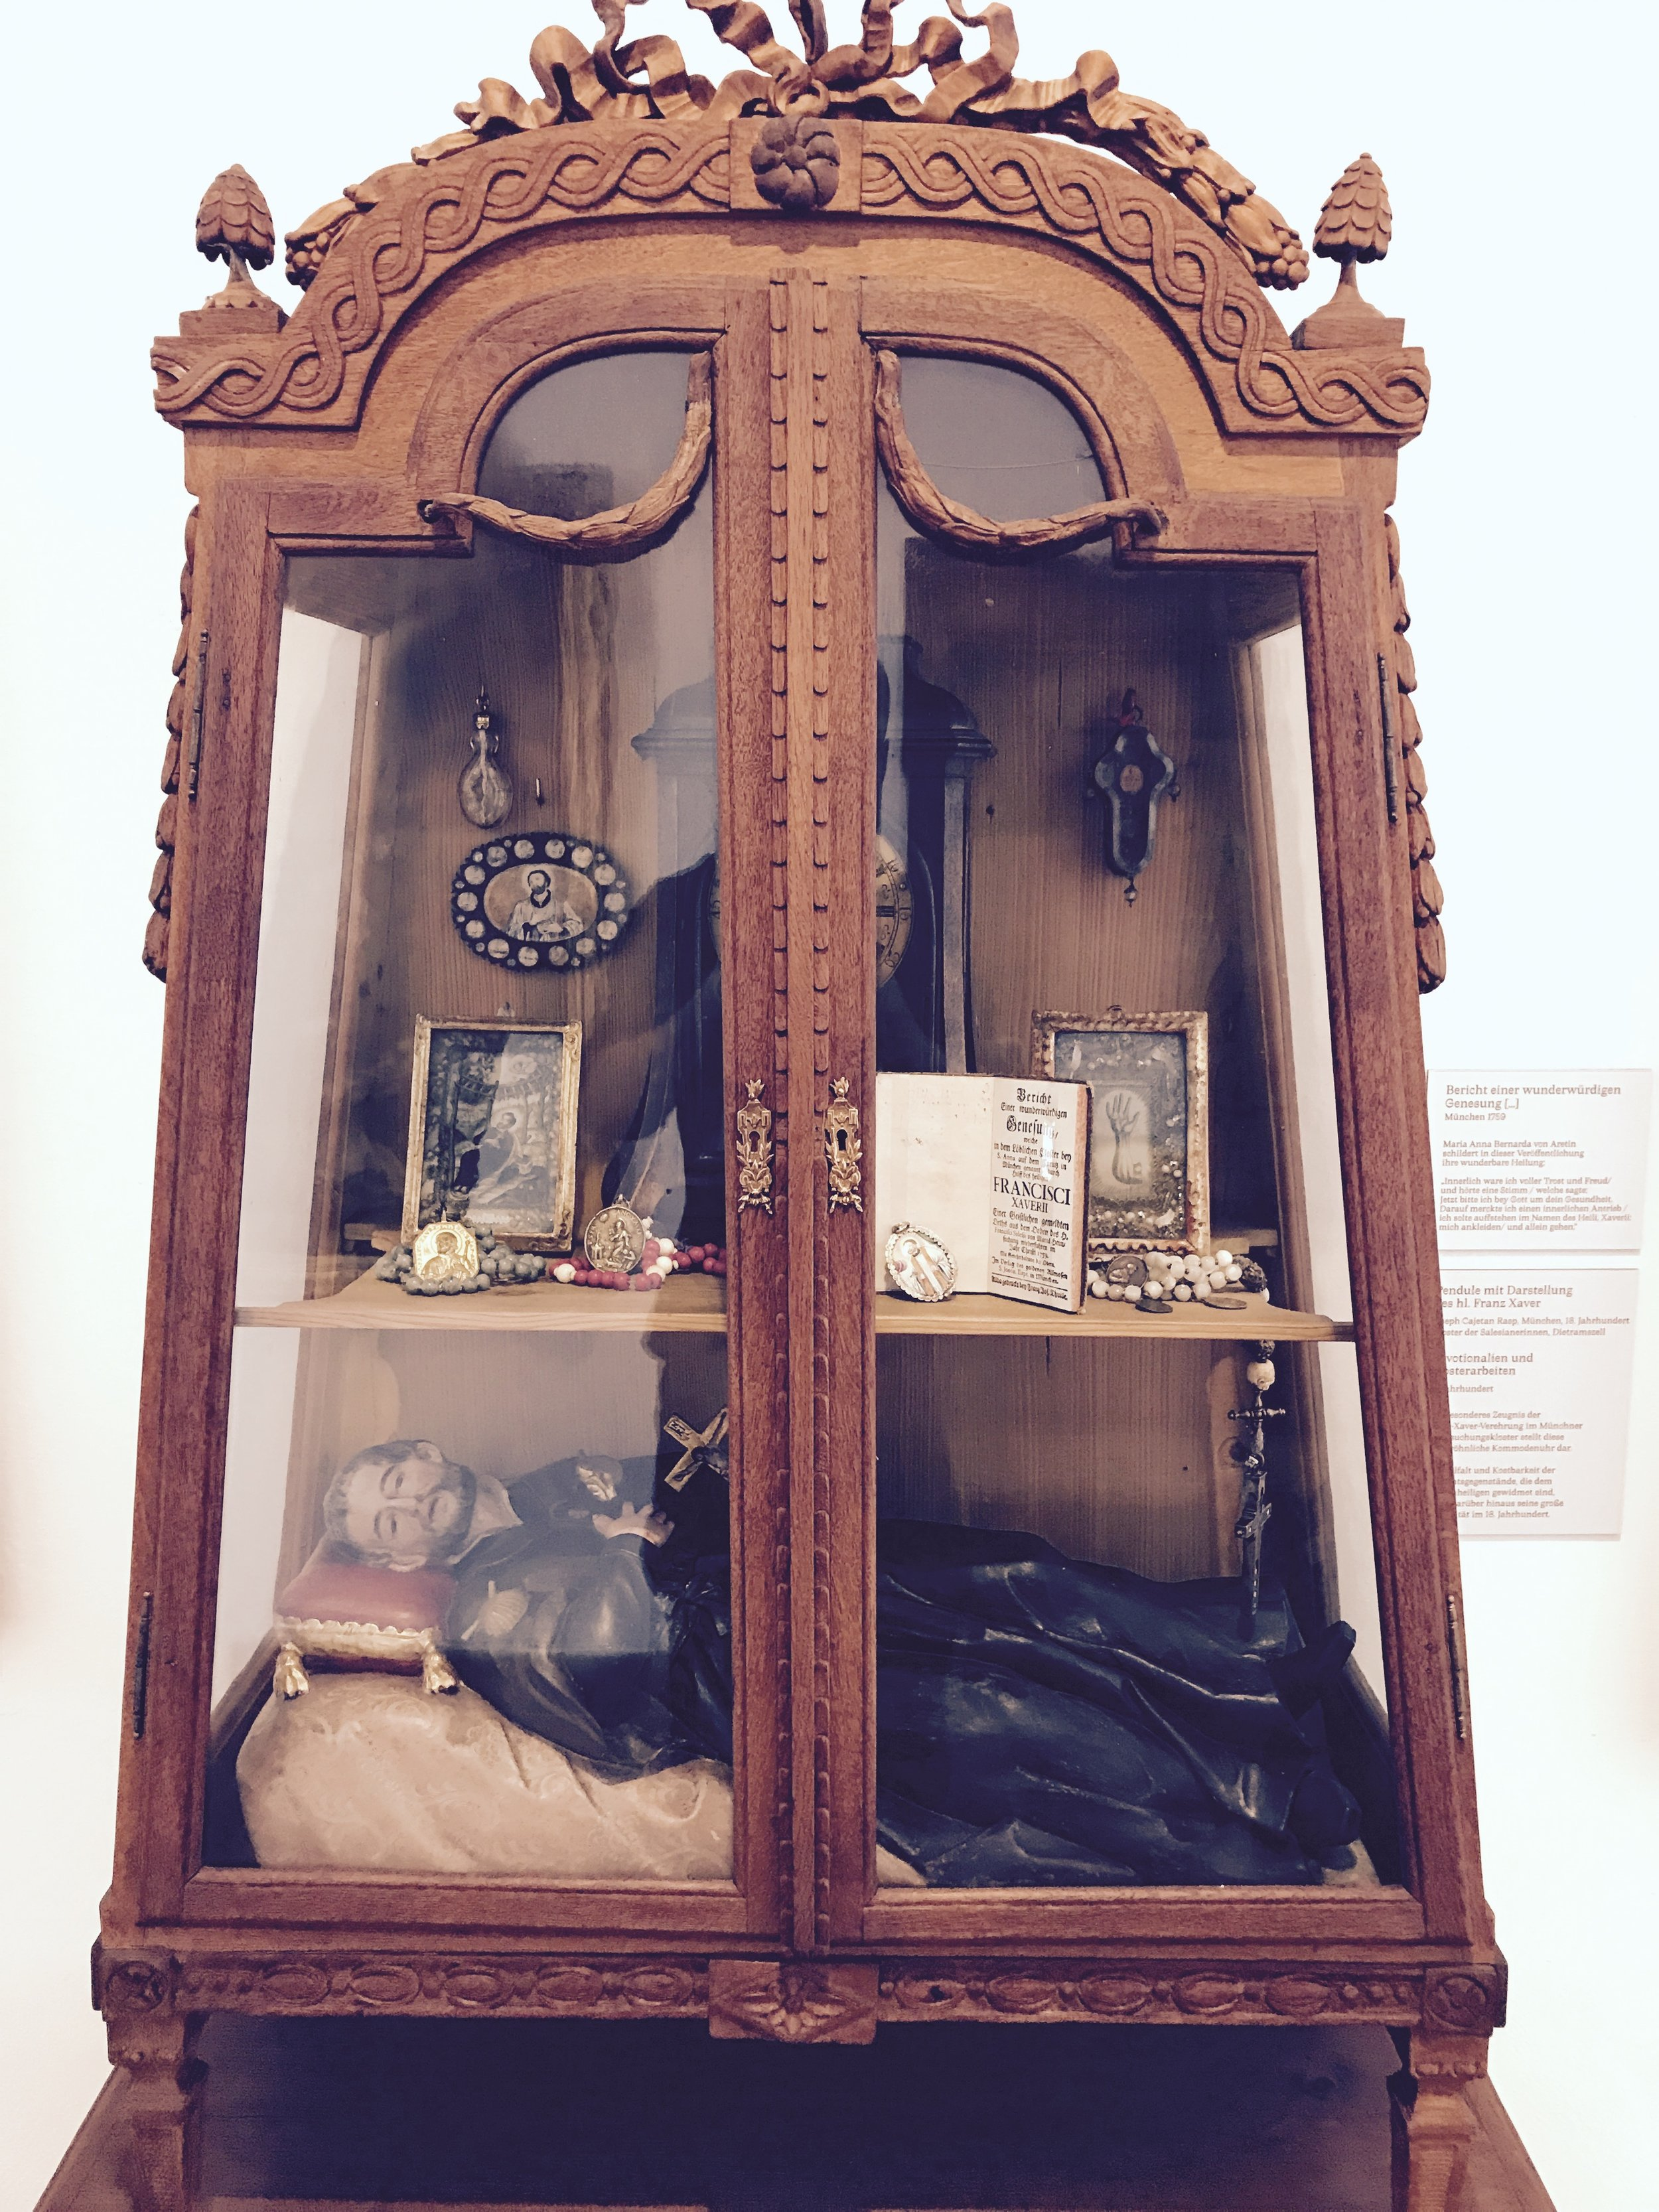 A curious display case of relics